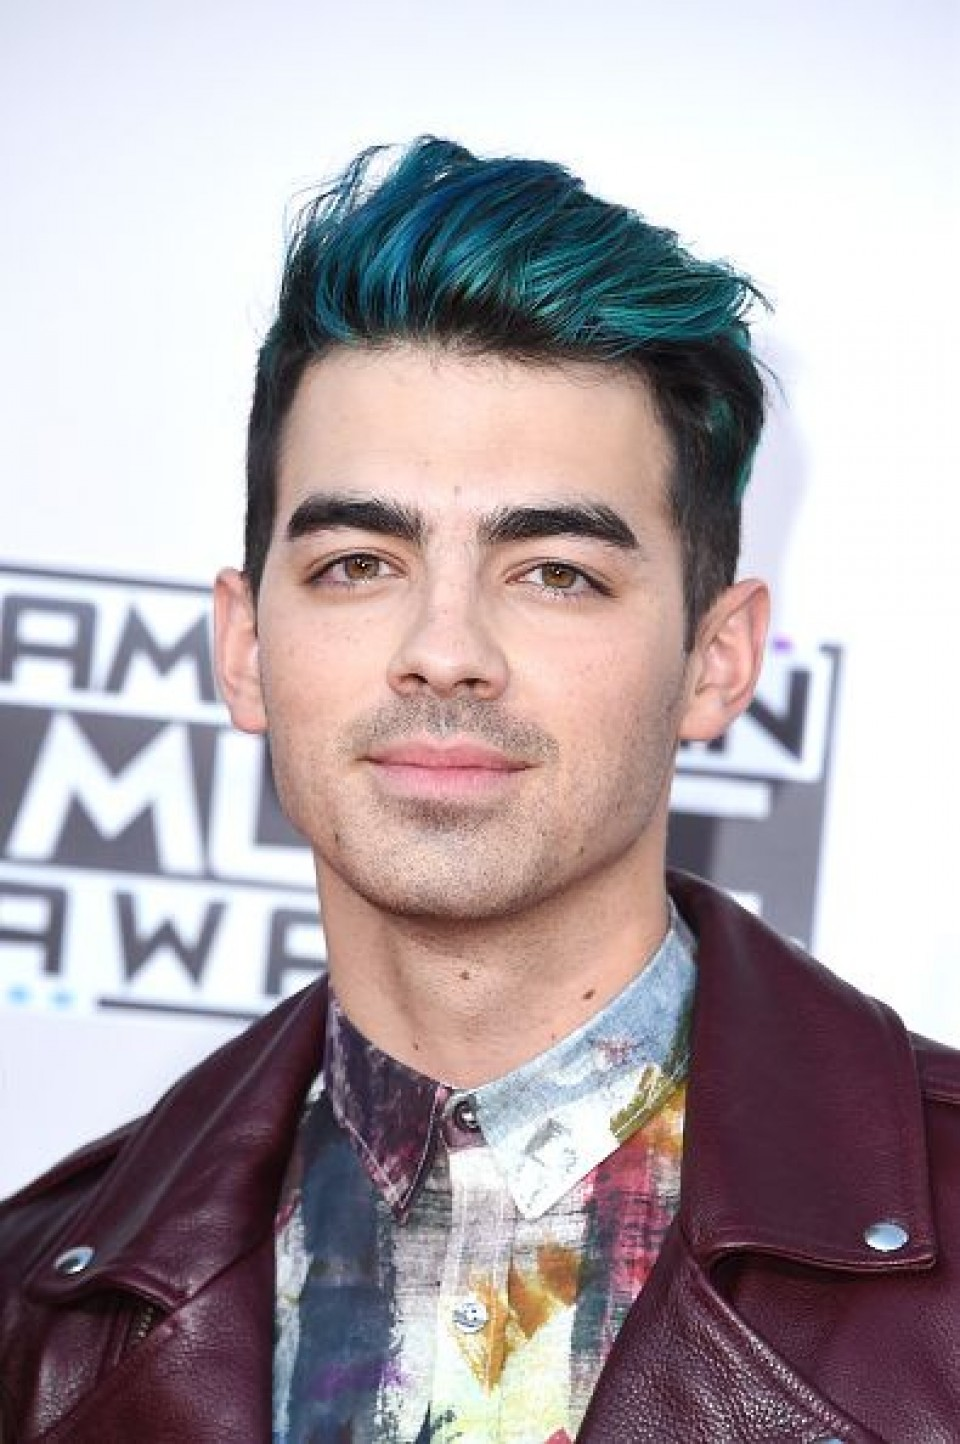 electric blue dyed hair, with long slicked back bangs, and shorter sides, worn by joe jonas, in a multicolored shirt, and maroon leather jacket